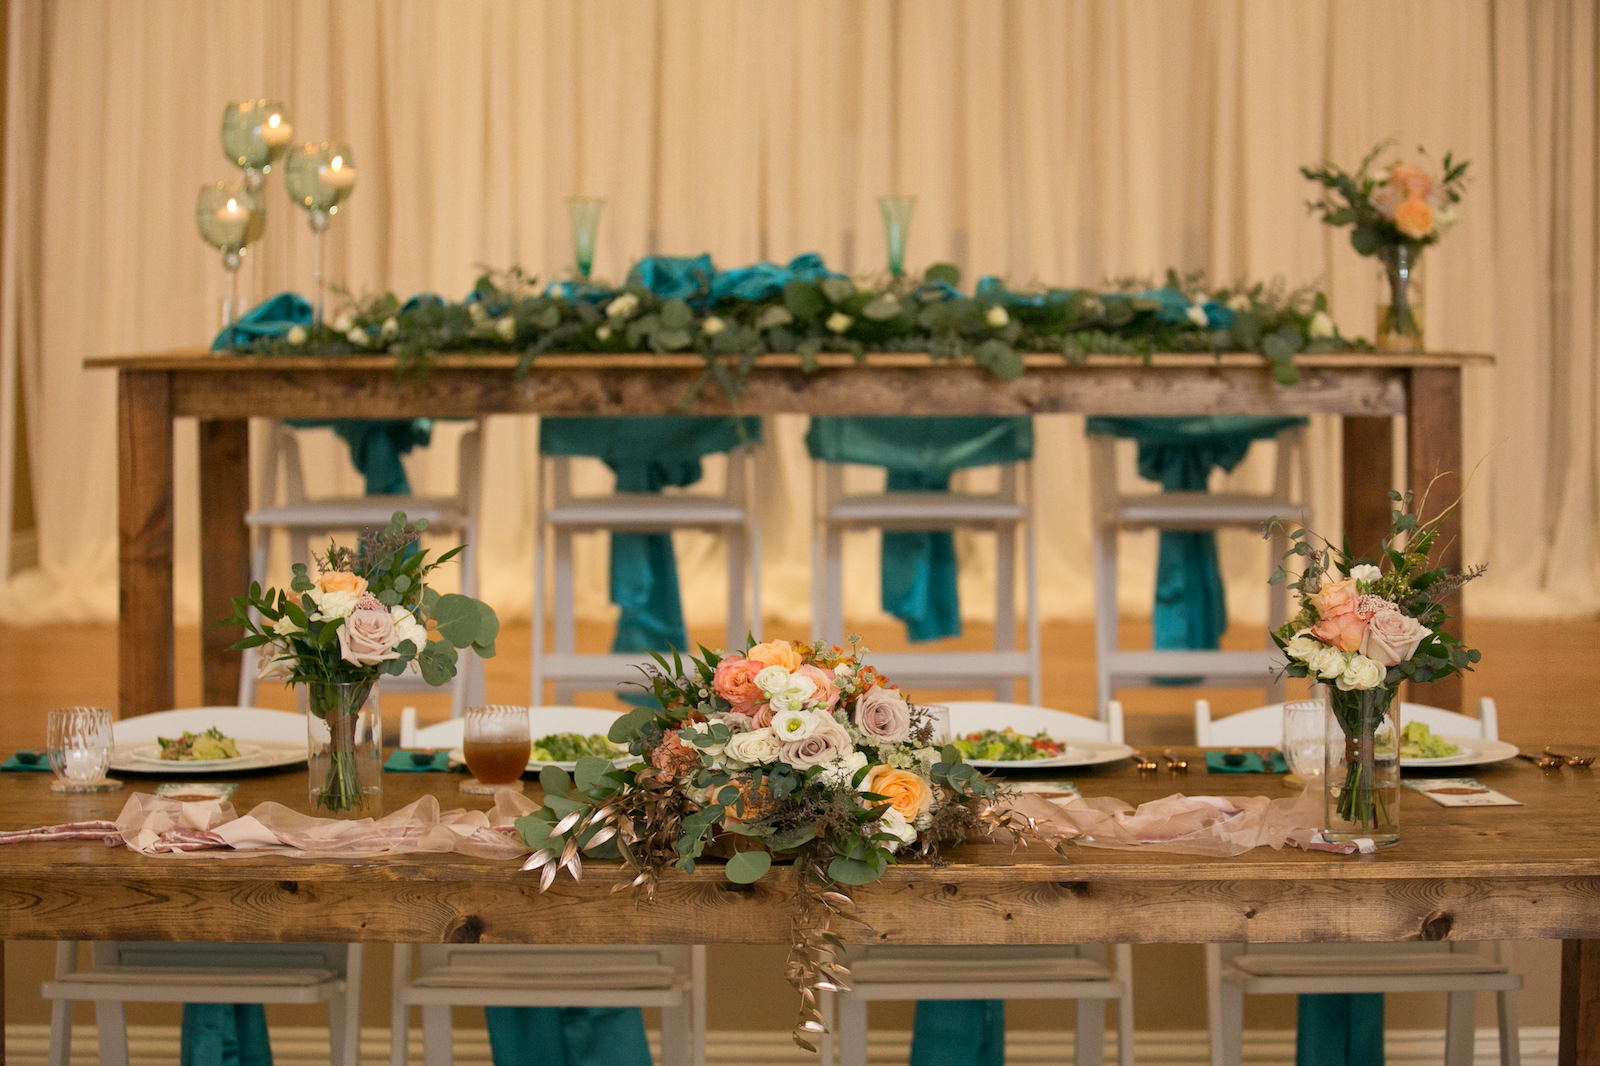 Rustic Wedding Reception Decor, Long Wooden Tables with Blue Teal Chair Sashes, Pink Orange and Mauve Roses, White Florals and Greenery Bouquets, Eucalyptus Table Runner | Wedding Photographer Carrie Wildes Photography | Wedding Linens Gabro Event Services